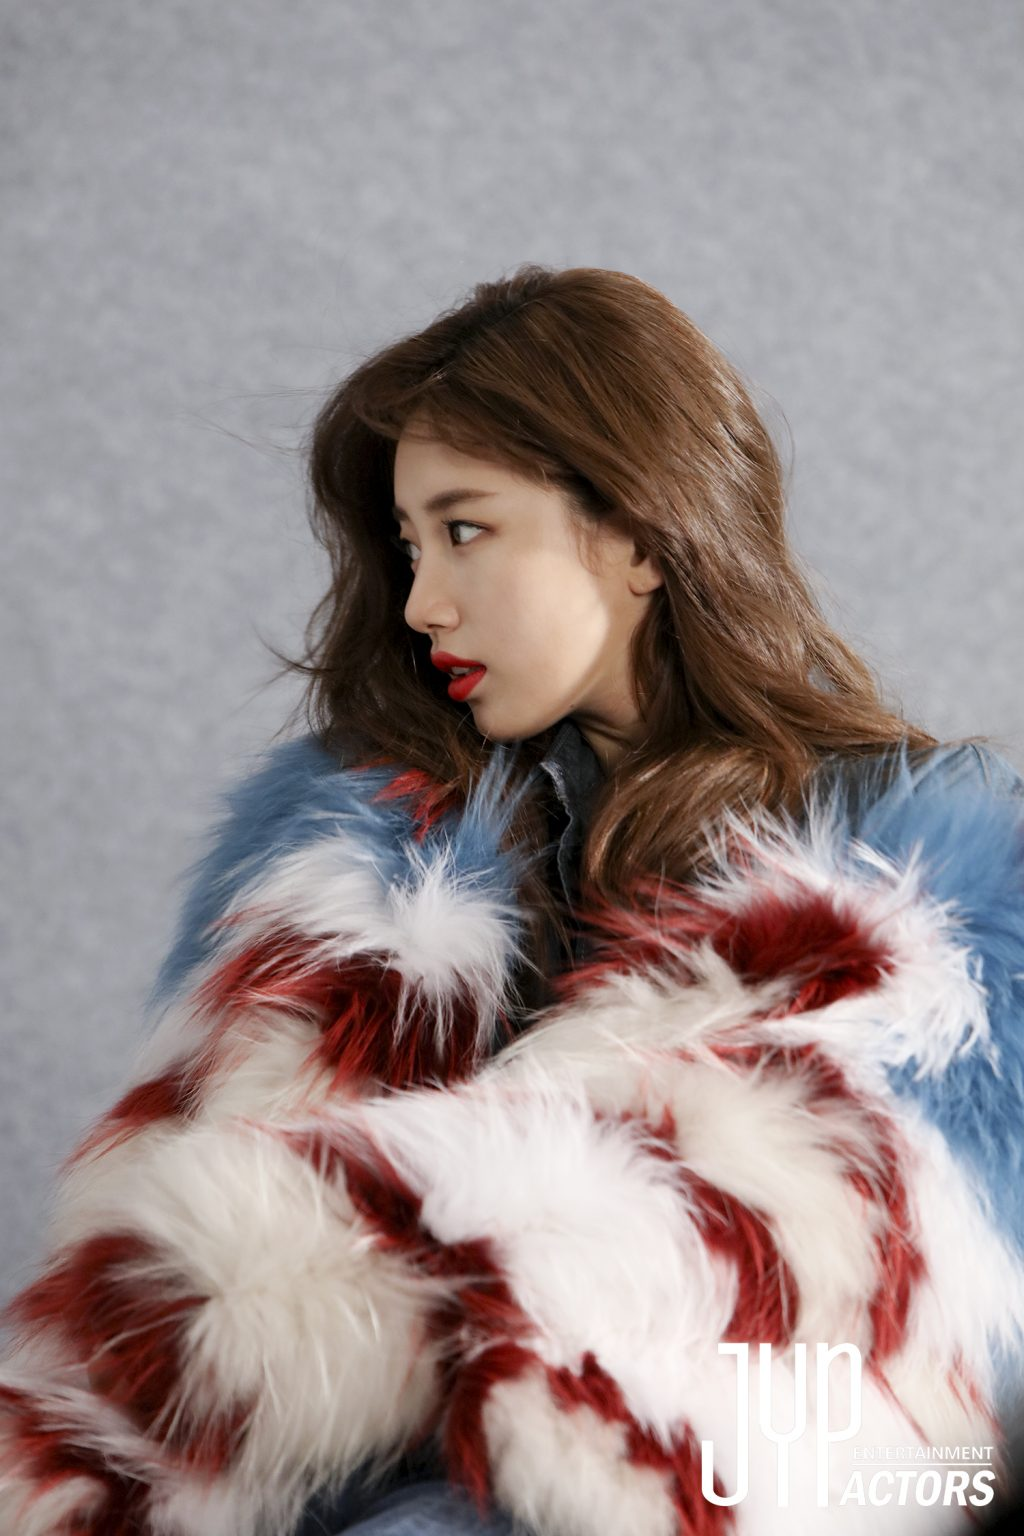 suzy-guess3